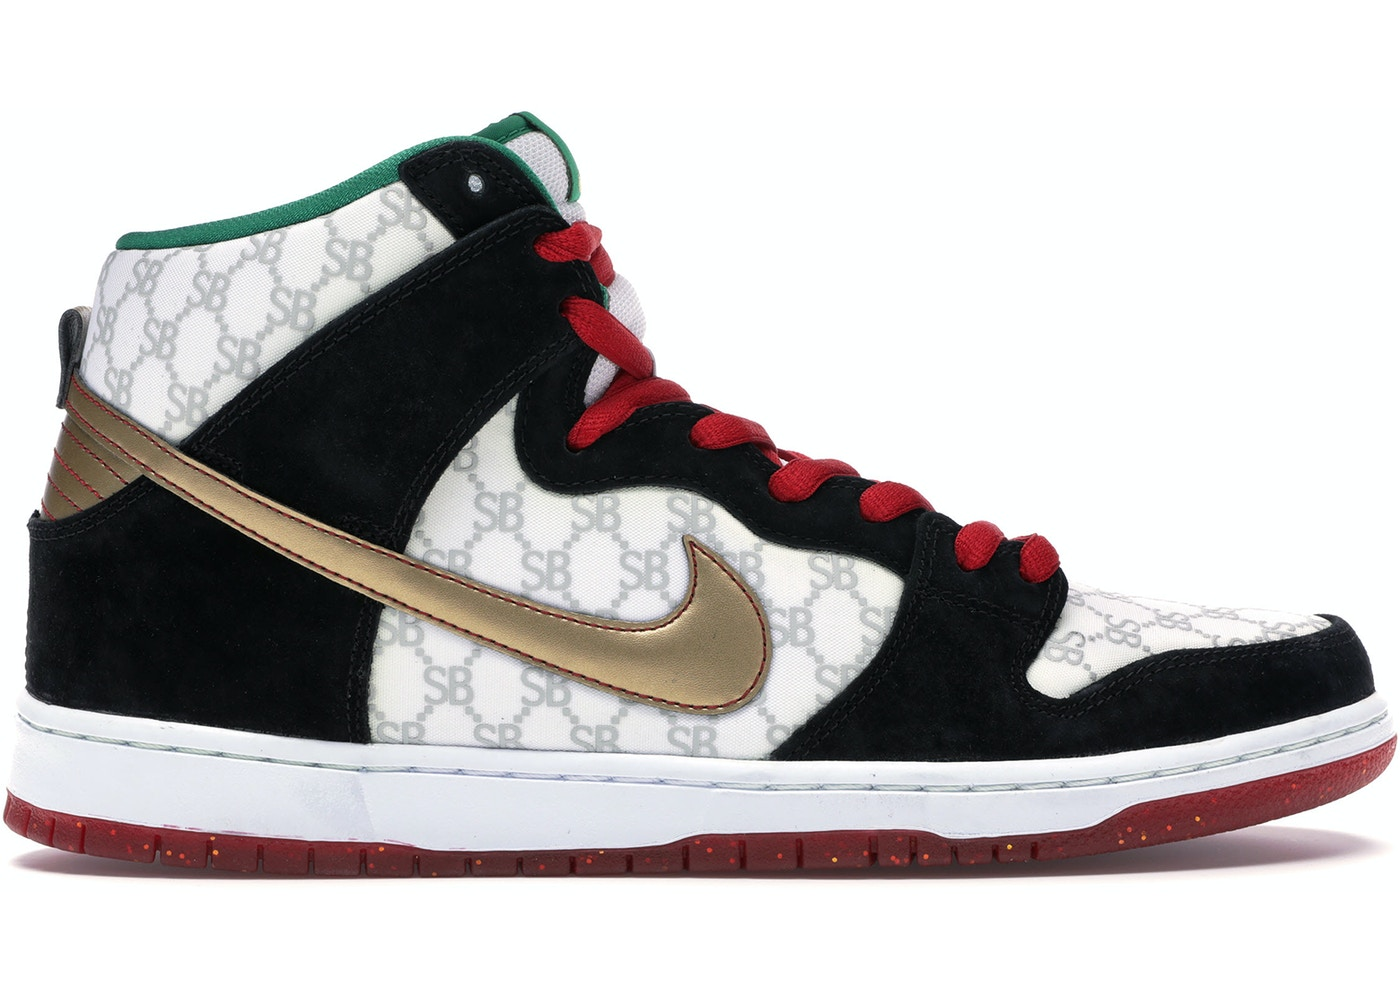 promo code 3cb34 07e2e Nike Dunk SB High Black Sheep